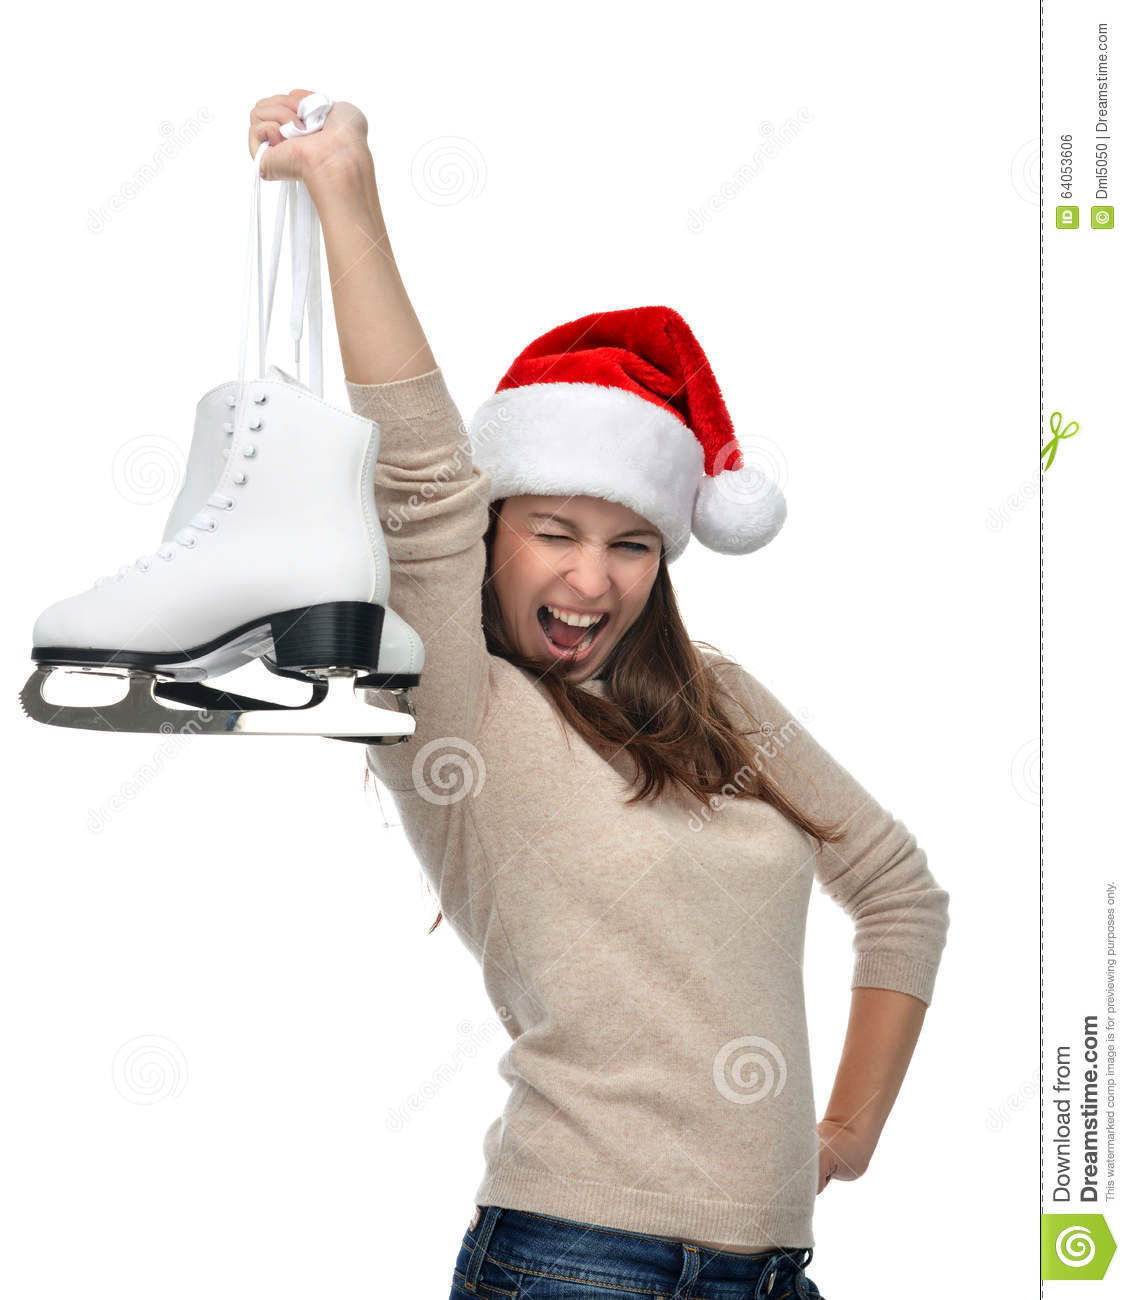 7870825346f Woman with ice skates getting ready for ice skating winter sport activity  in christmas santa hat screaming or yelling isolated on a white backgroun